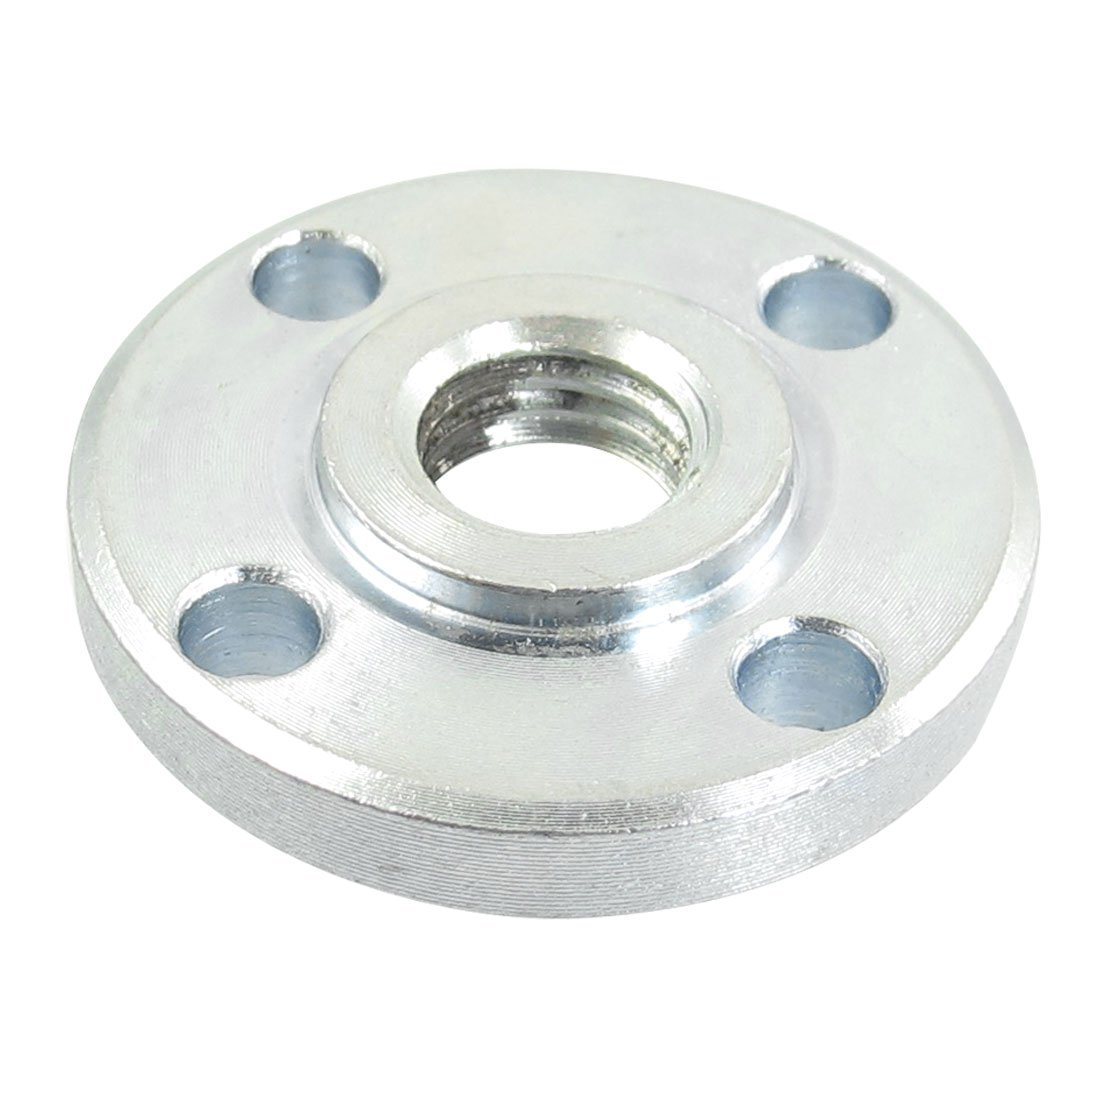 Round shape electrical angle grinder inner outer flange